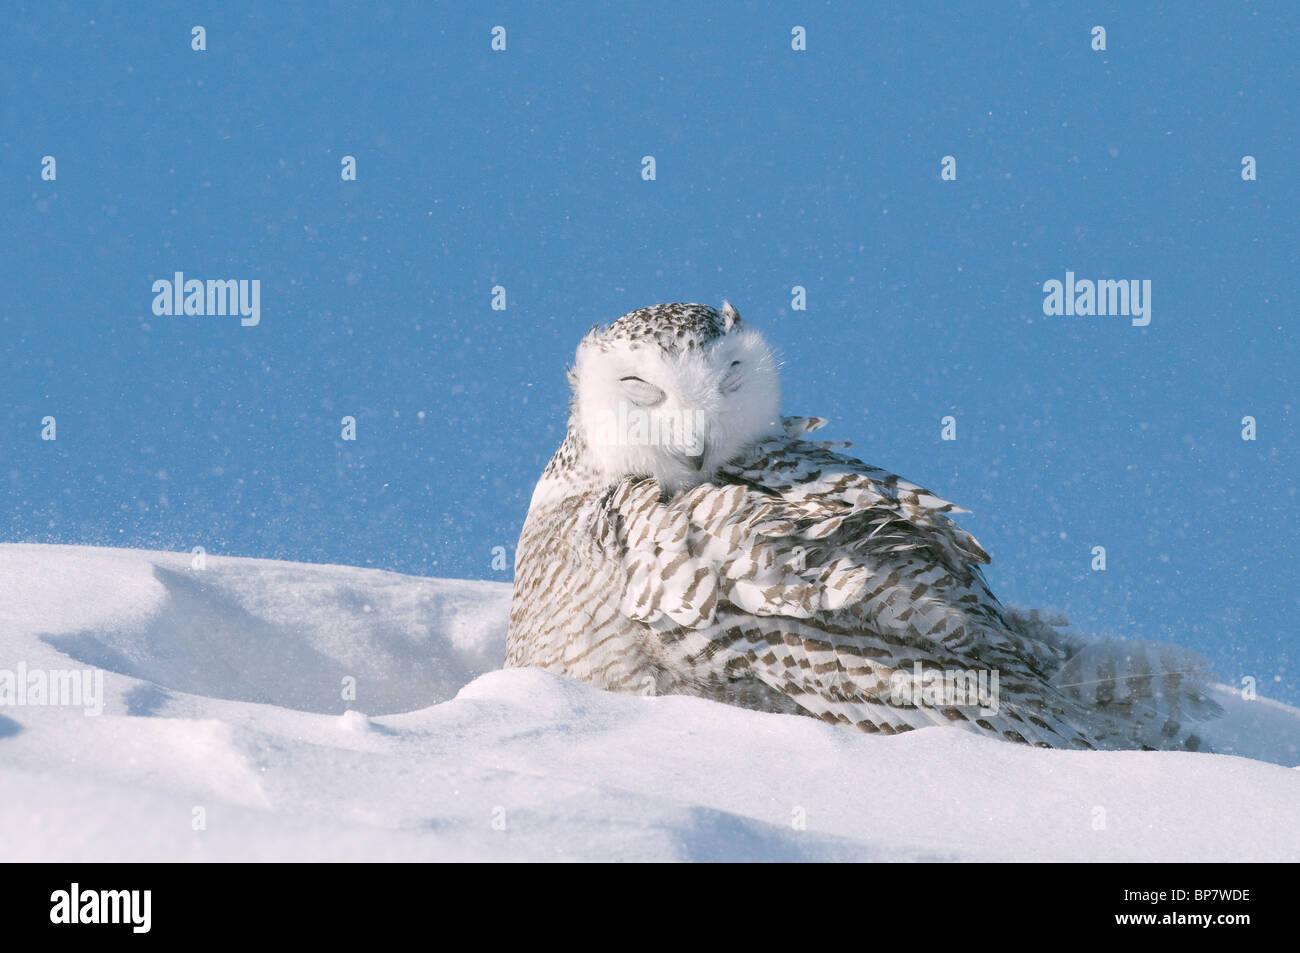 Snowy Owl (Bubo scandiacus, Nyctea scandiaca) resting in snow with eyes closed. - Stock Image